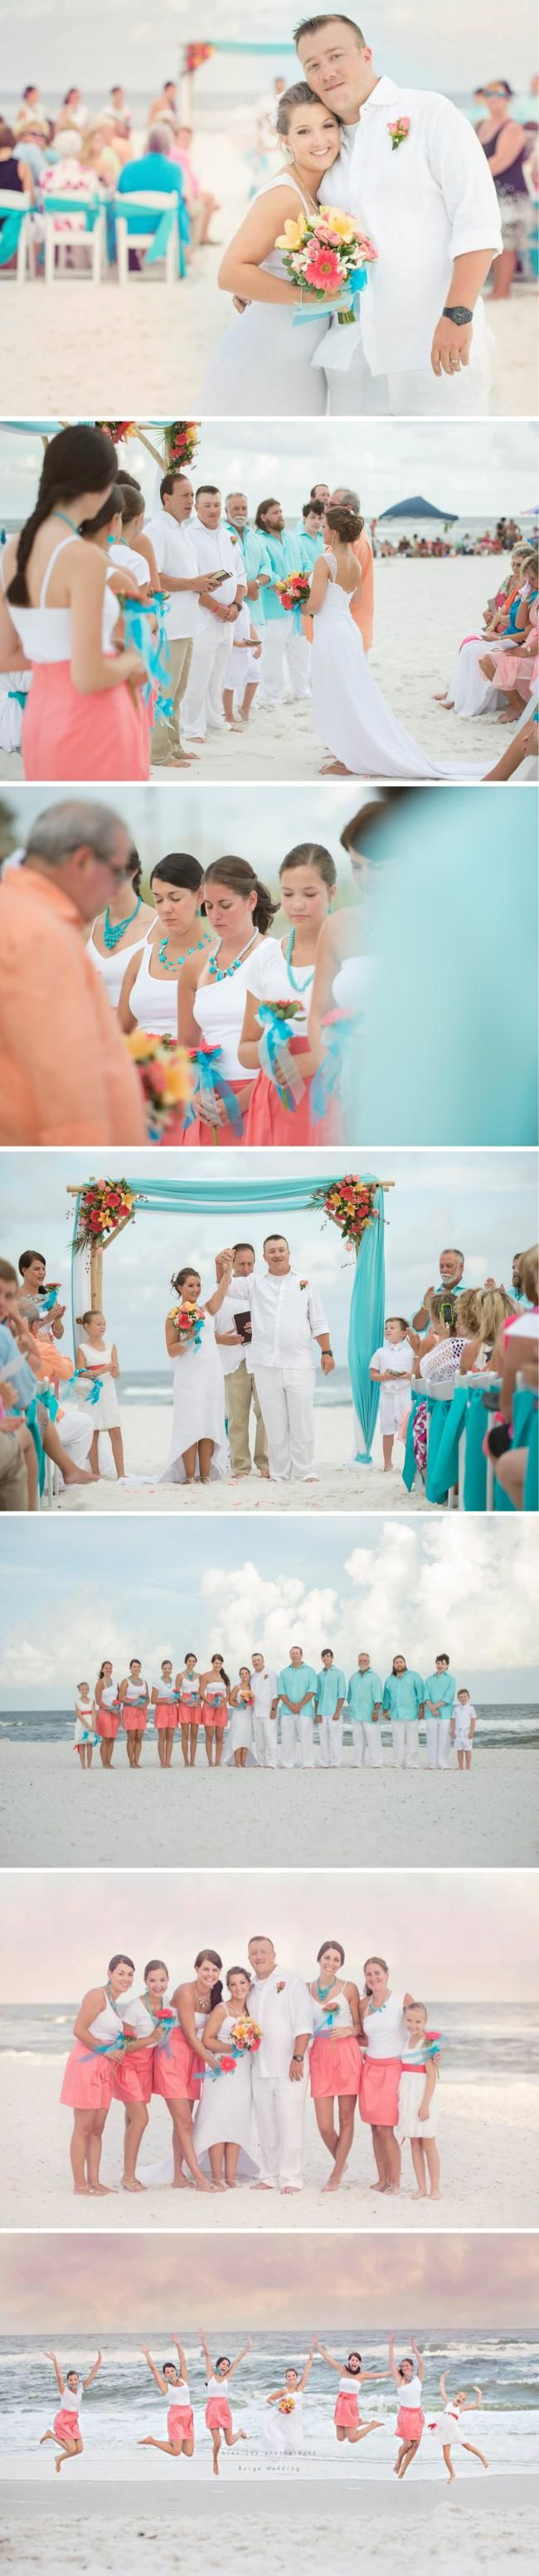 Coral bridesmaid skirts with turquoise necklaces by Frill